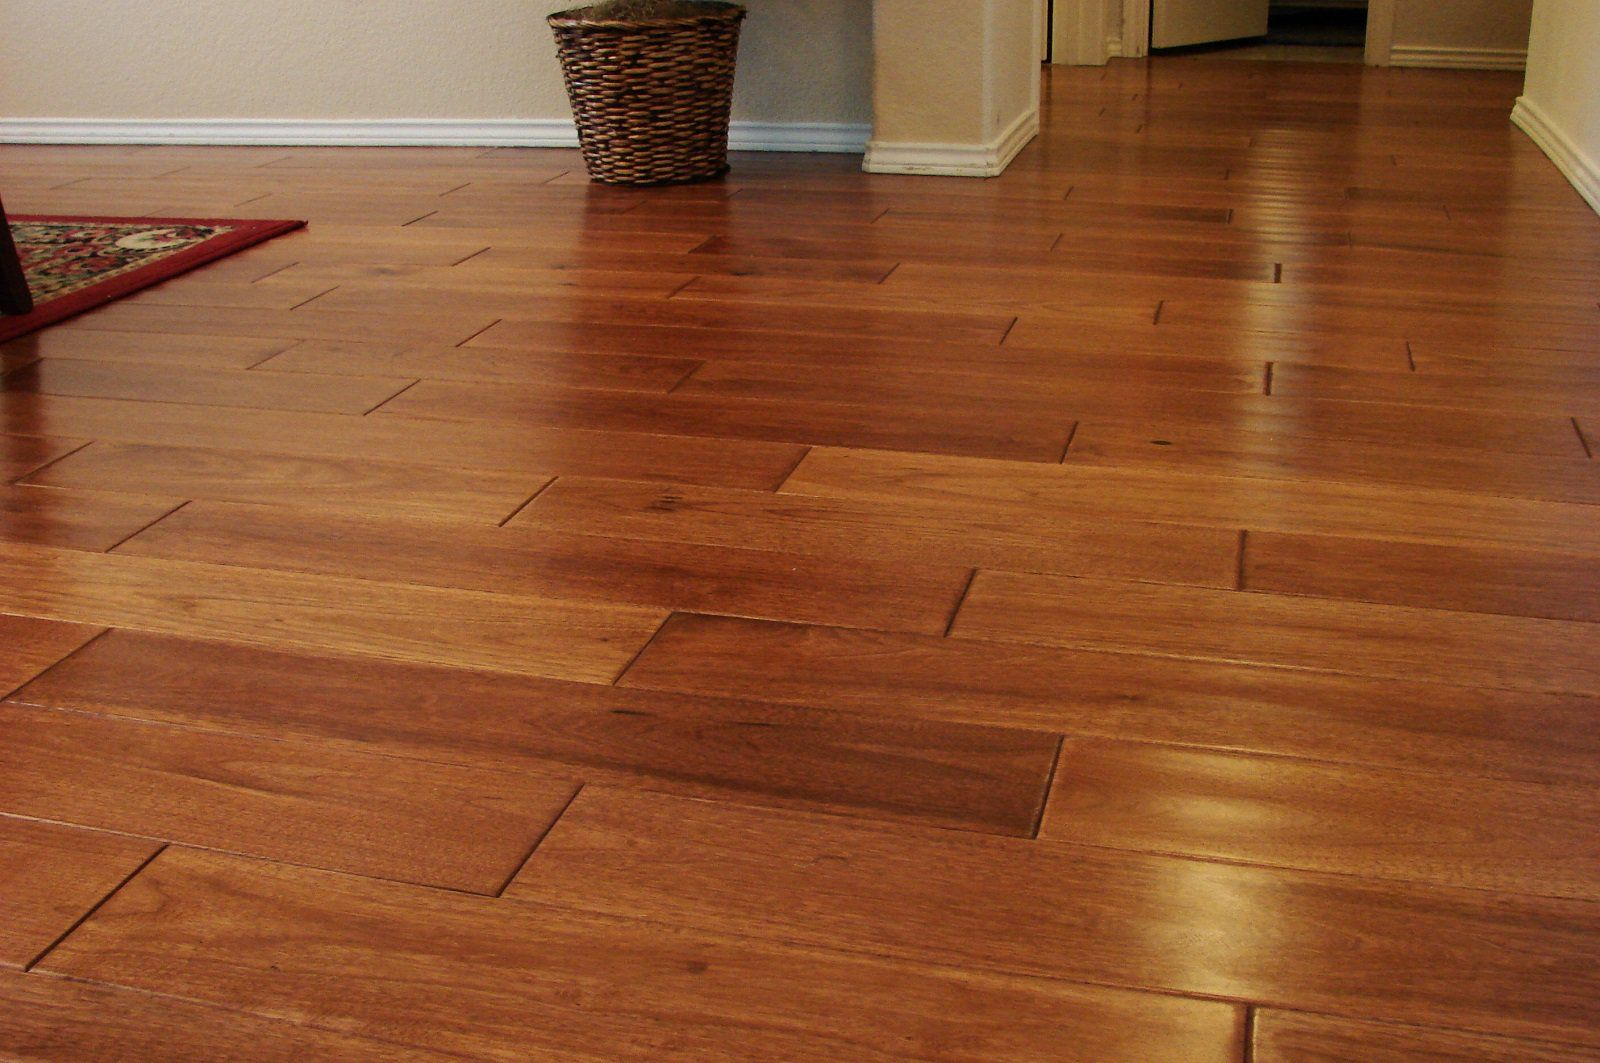 How To Make Easy Homemade Natural Pine Sol For Sparkling Floors